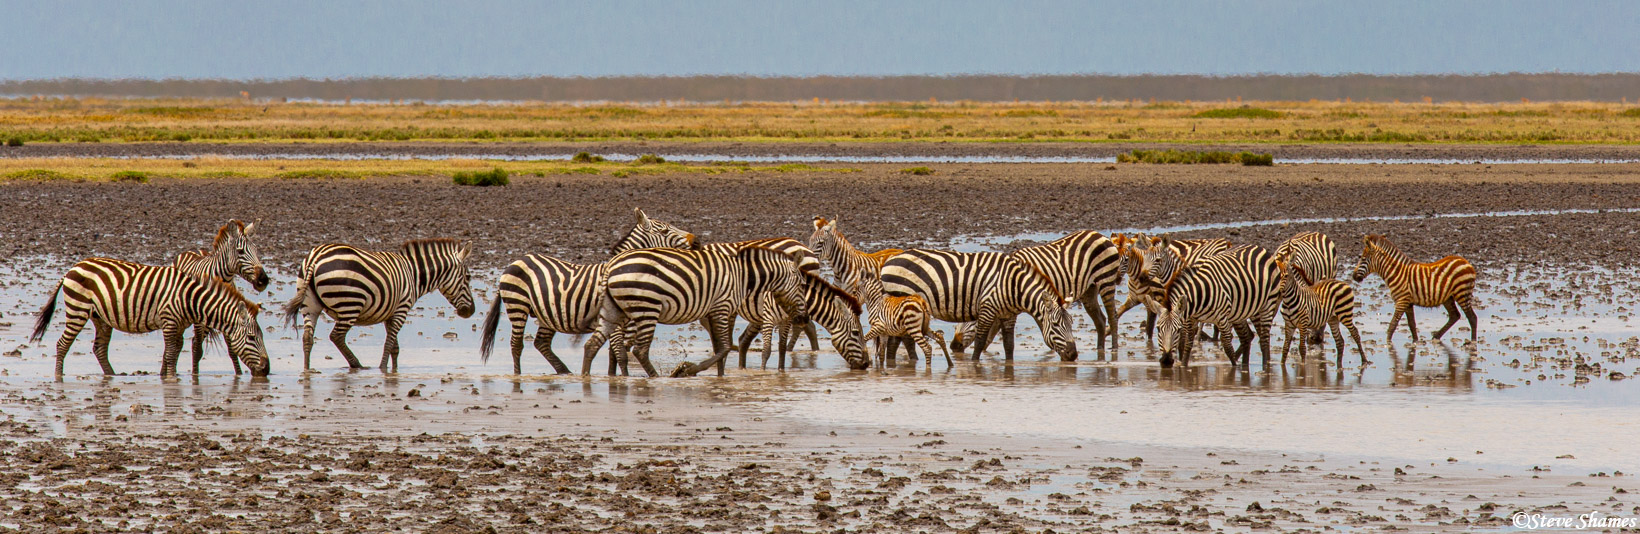 serengeti, national park, tanzania, zebras, photo